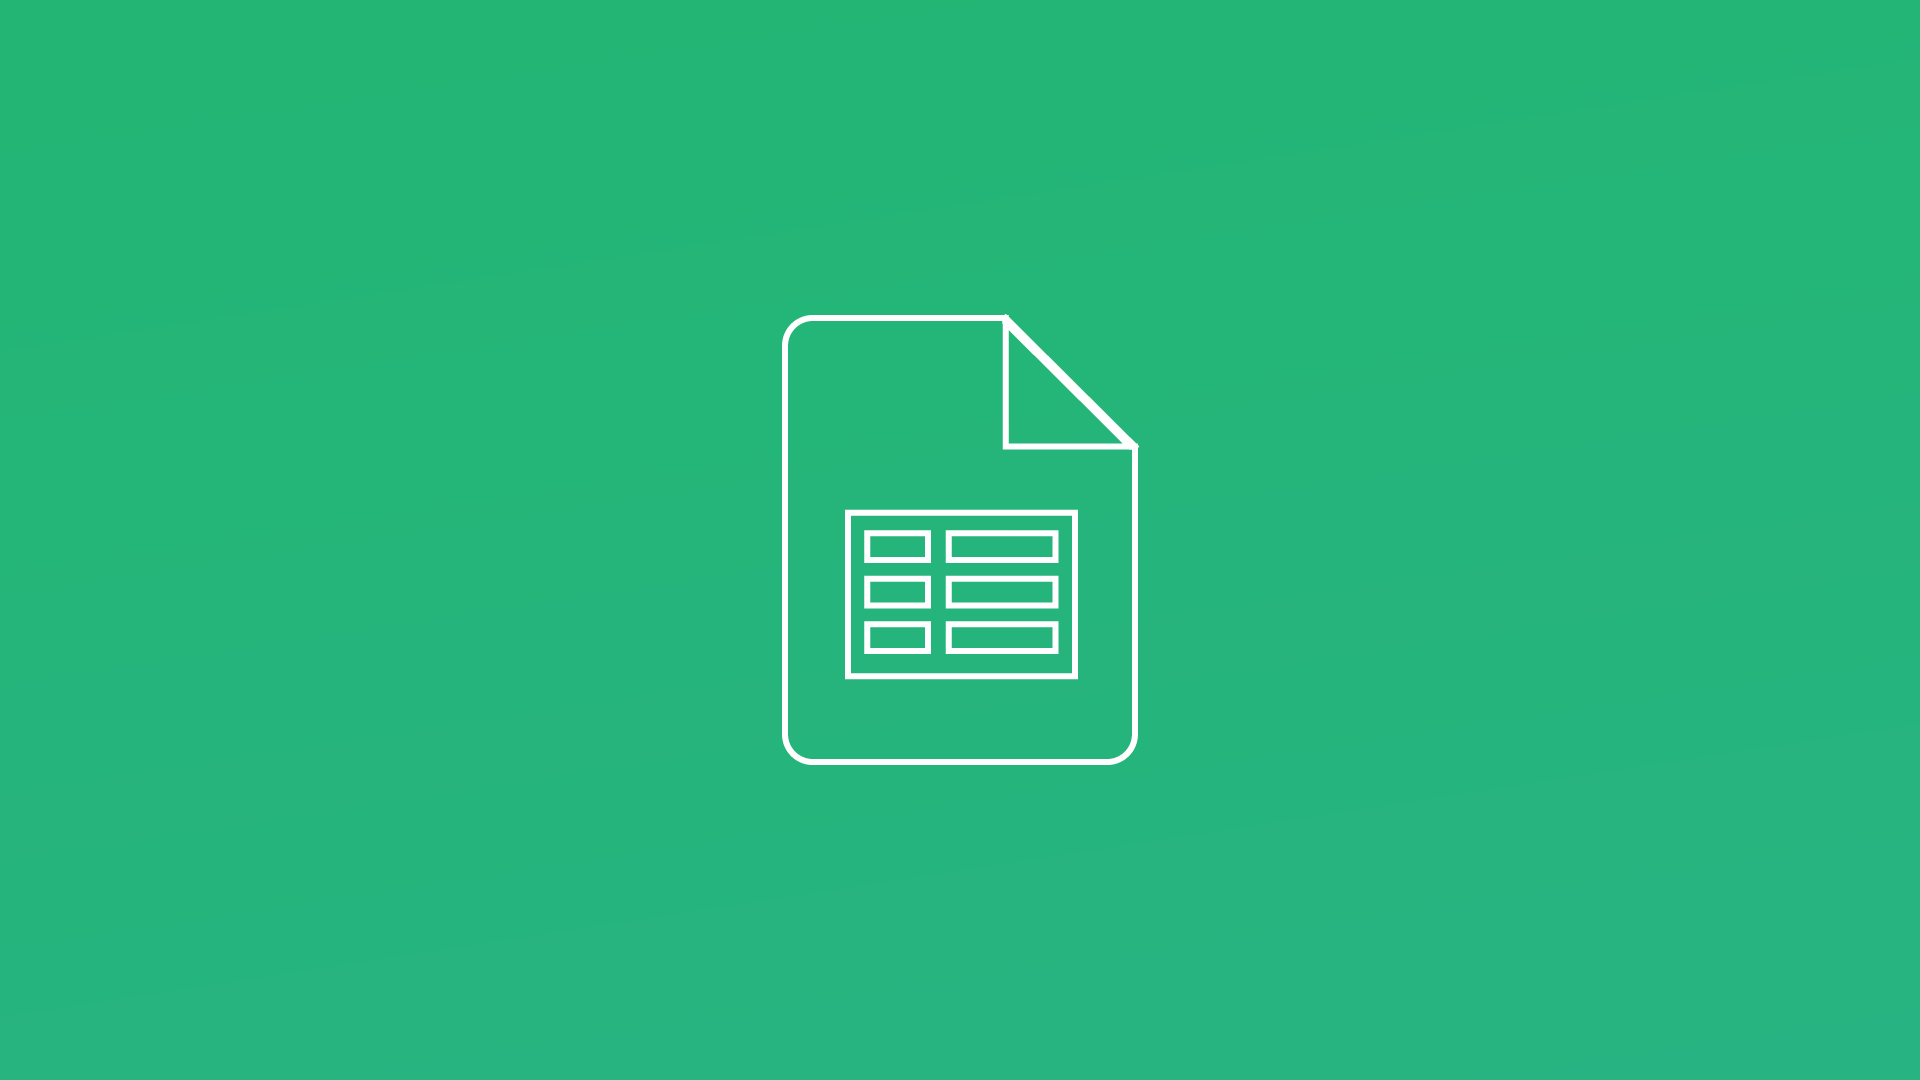 Google Sheets - Create, Edit, Share and Publish